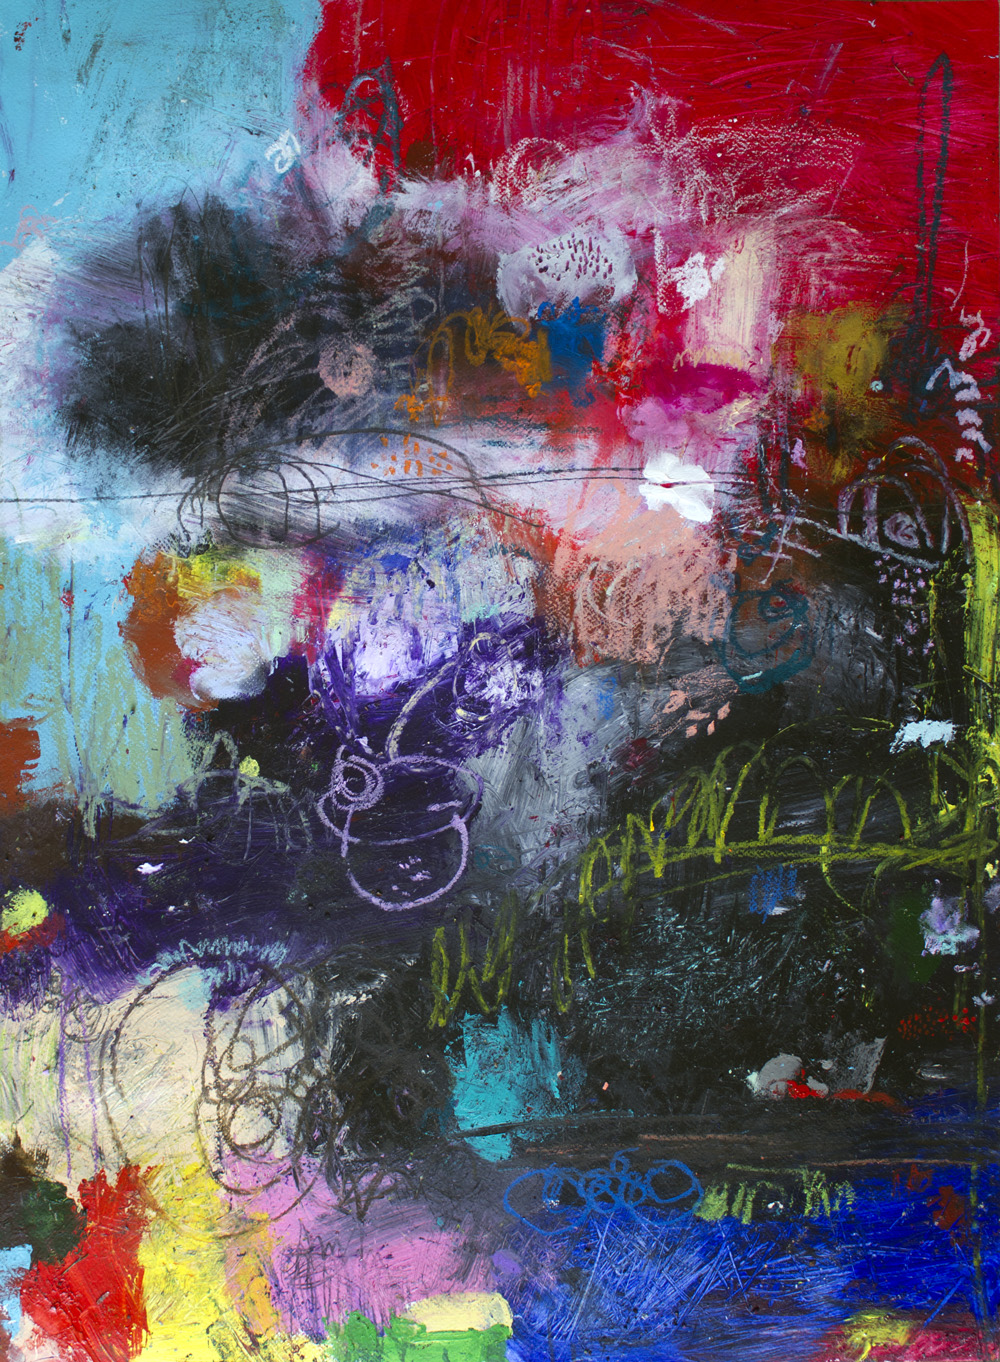 original abstract art painting on paper by michel keck